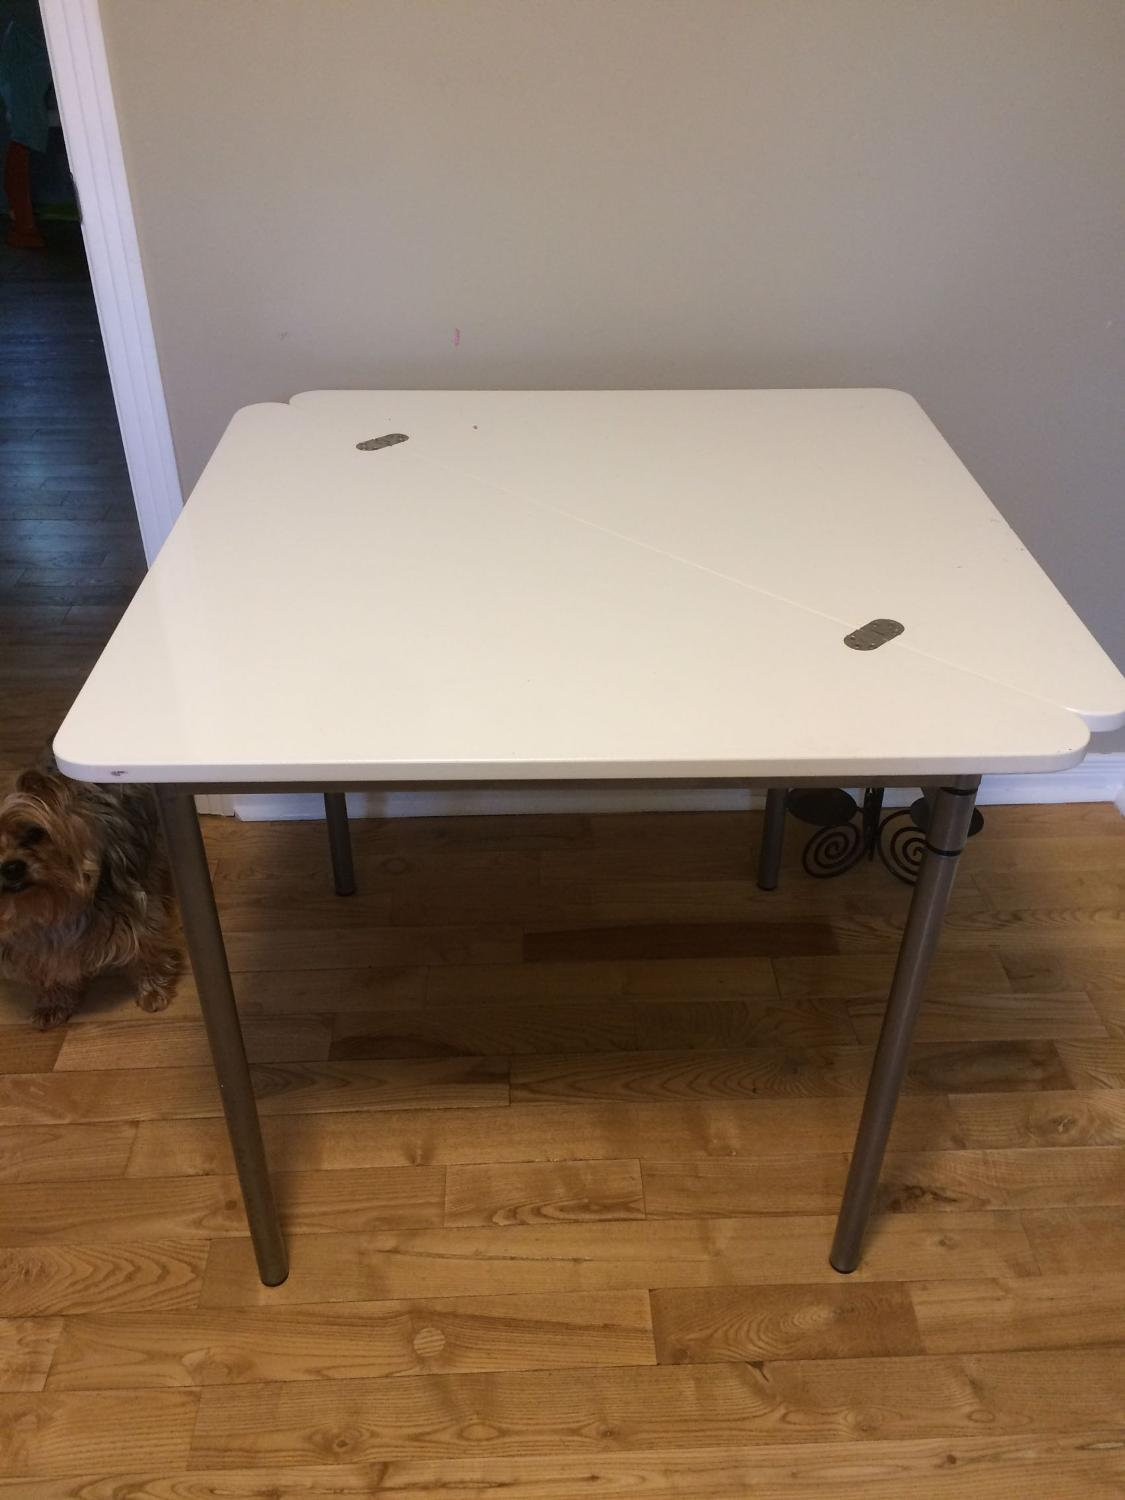 Find More Petite Table Ikea Lokka For Sale At Up To 90 Off